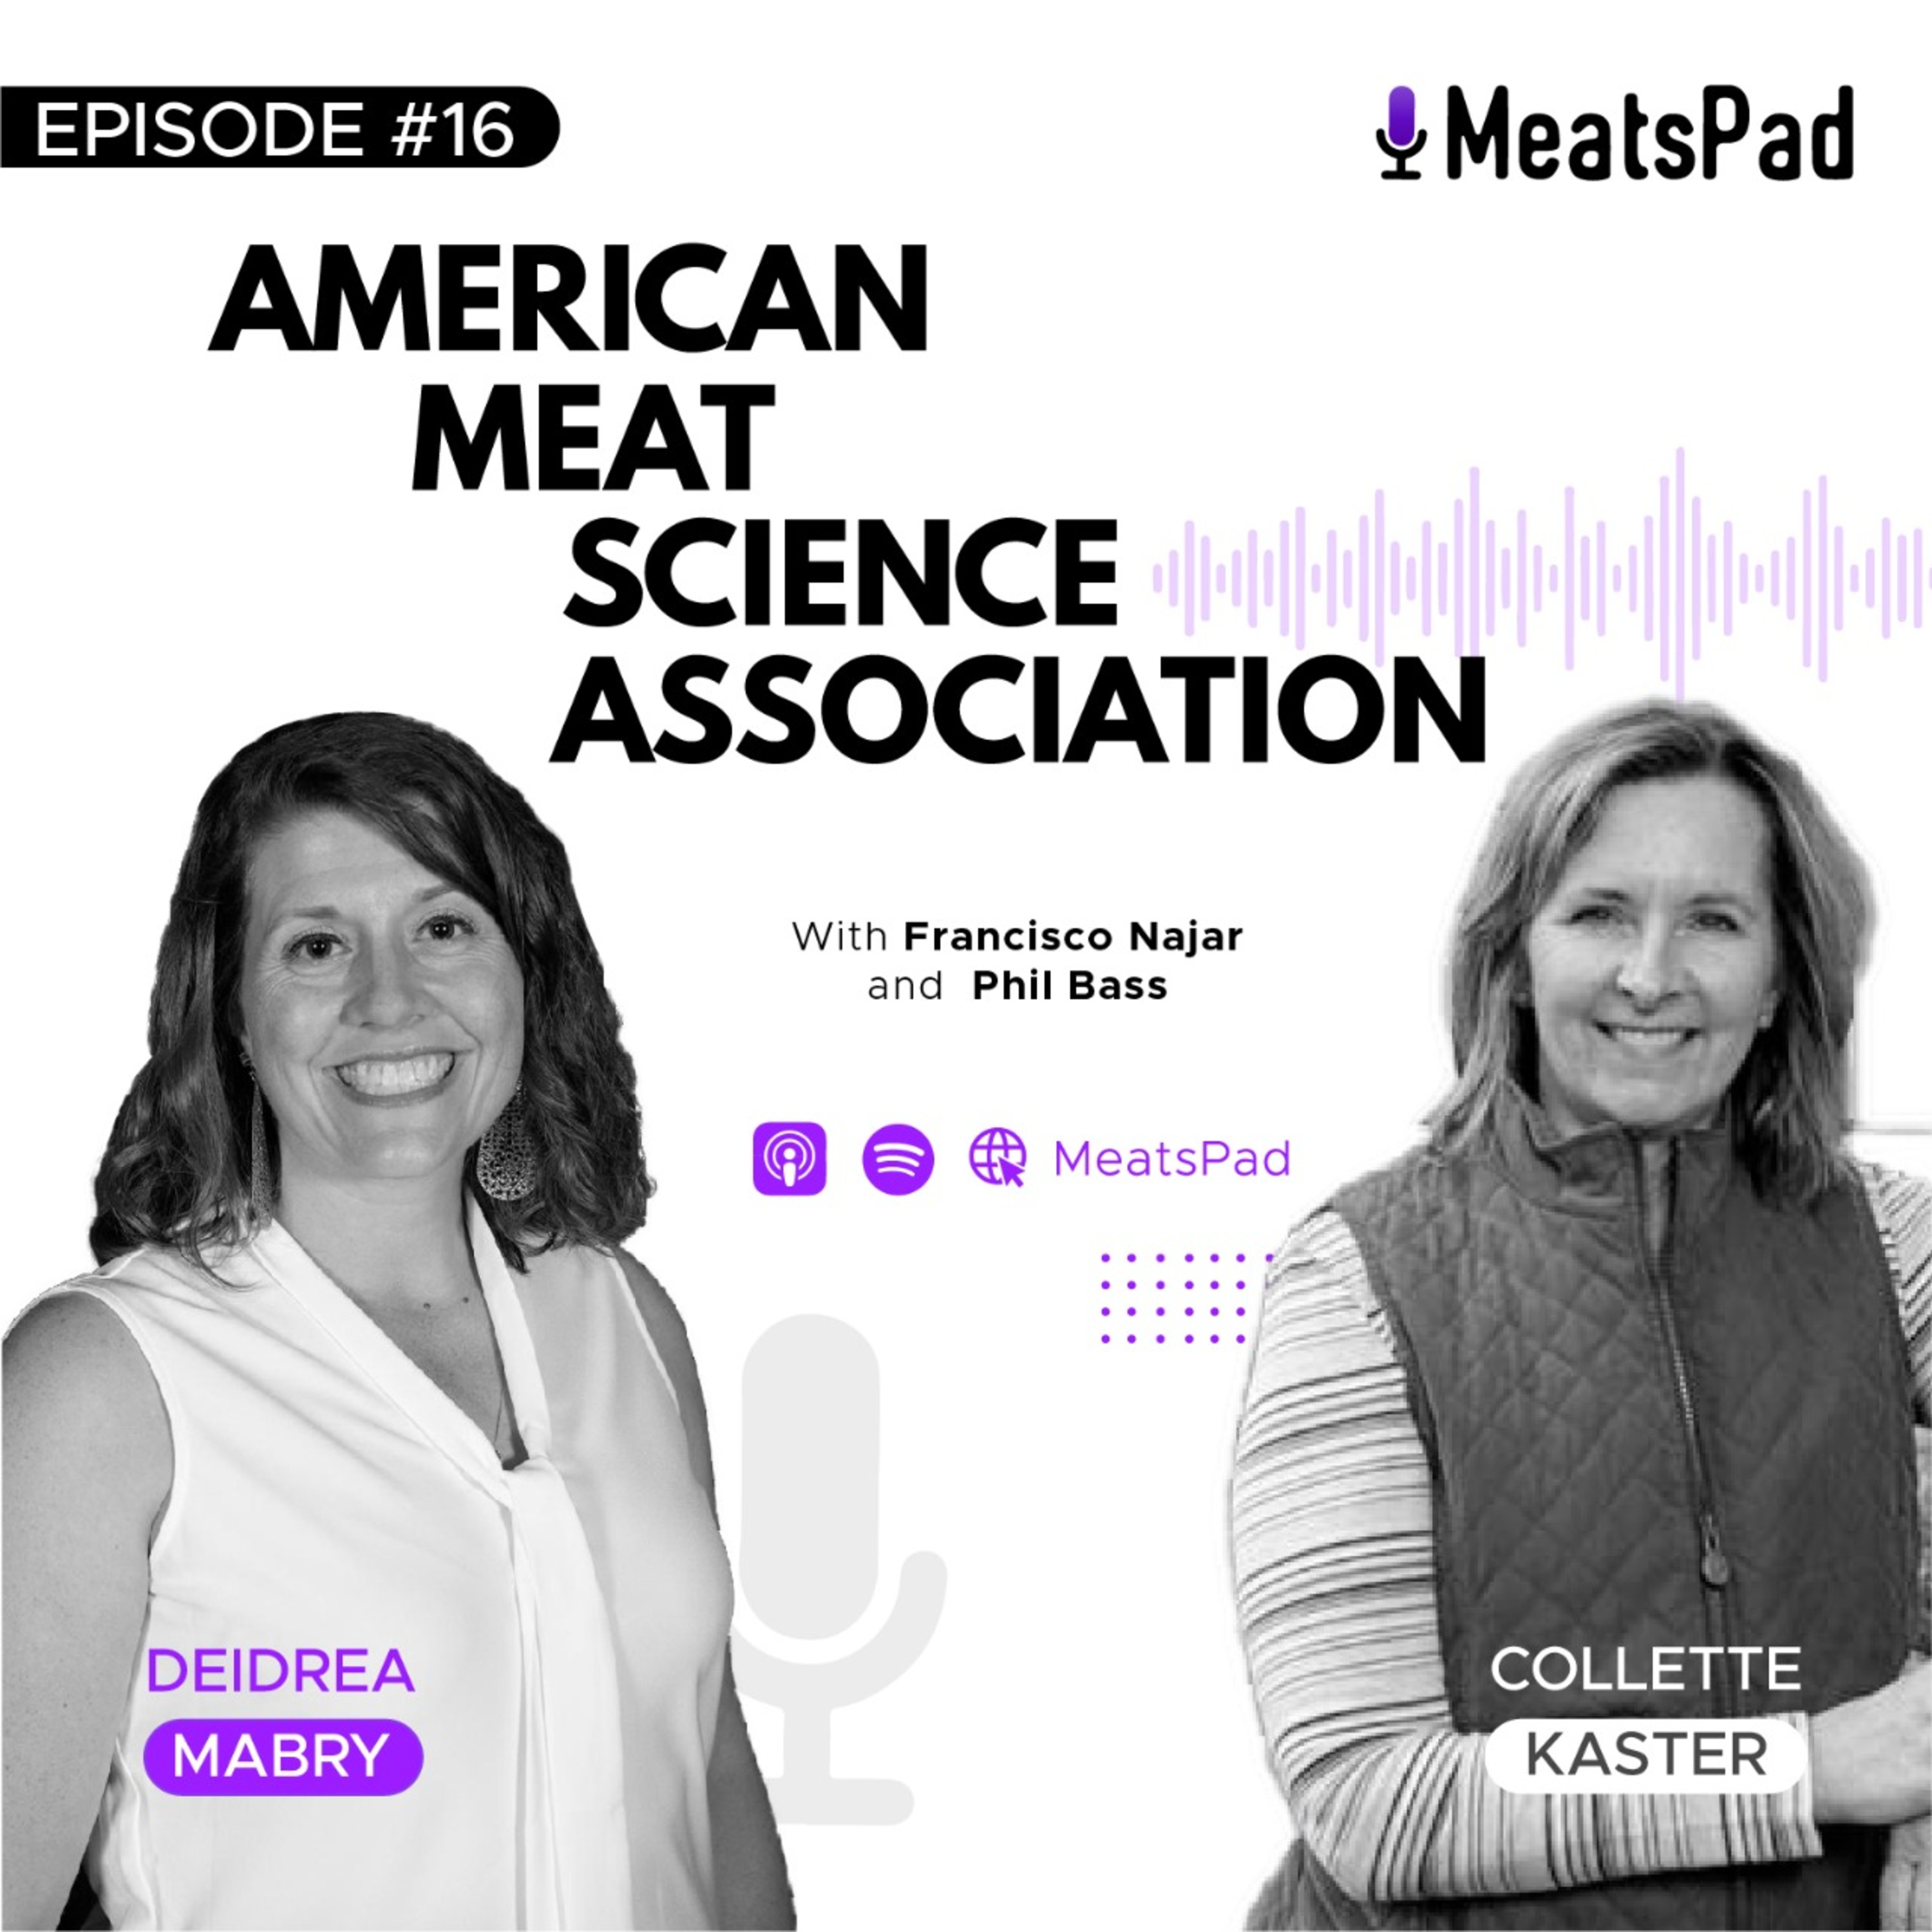 American Meat Science Association - Collette Kaster and Deidrea Mabry